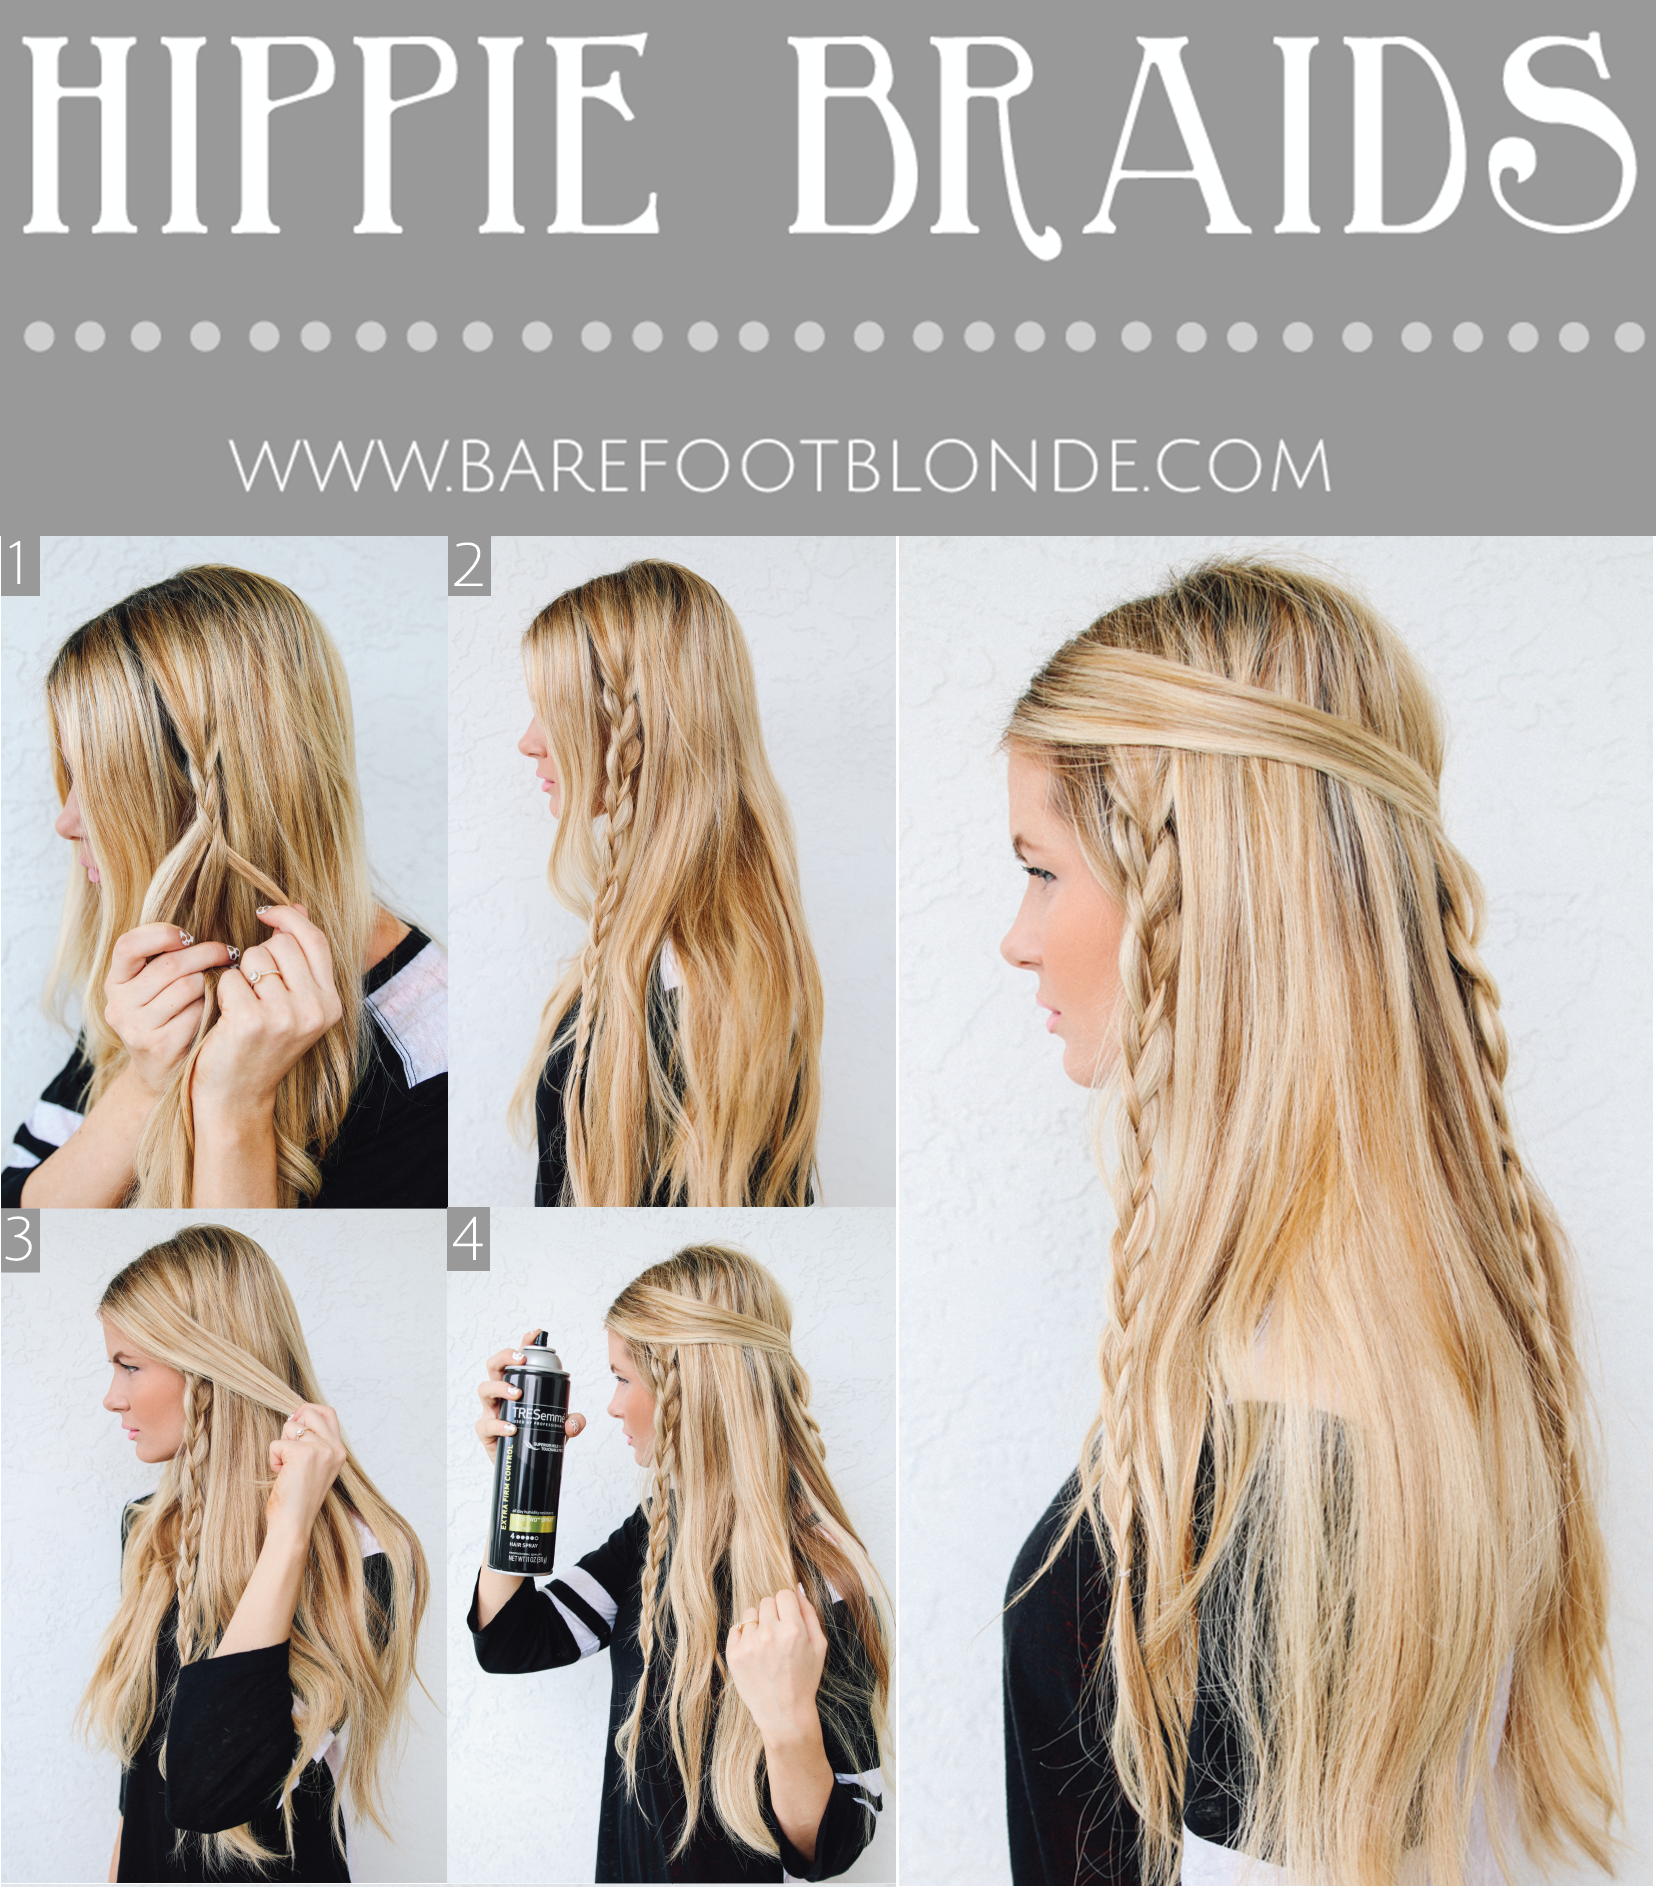 easy hippie braids hairstyle for school | my hairstyle ideas